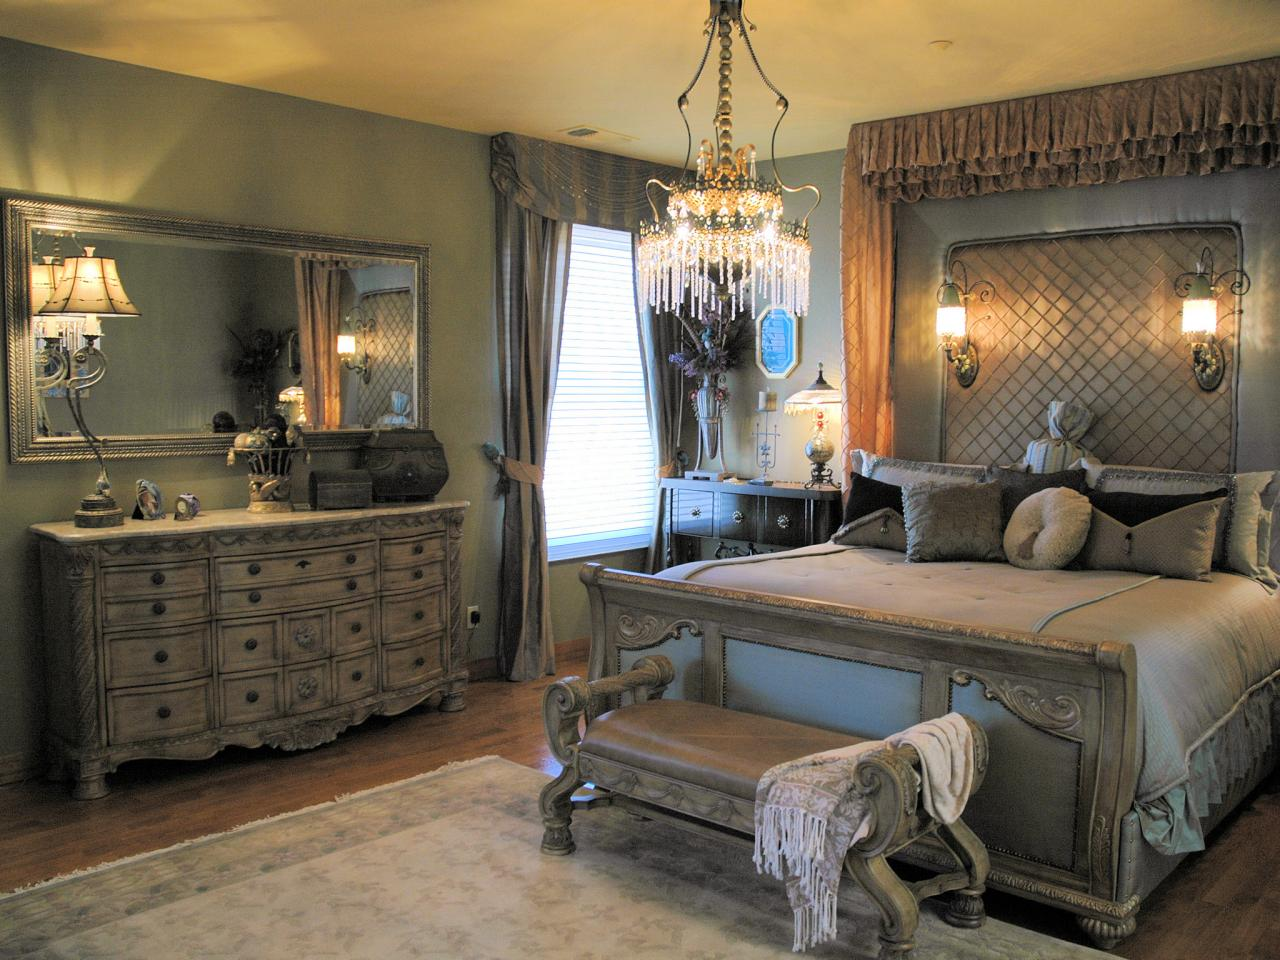 Romantic bedroom lighting hgtv for Interior design styles master bedroom